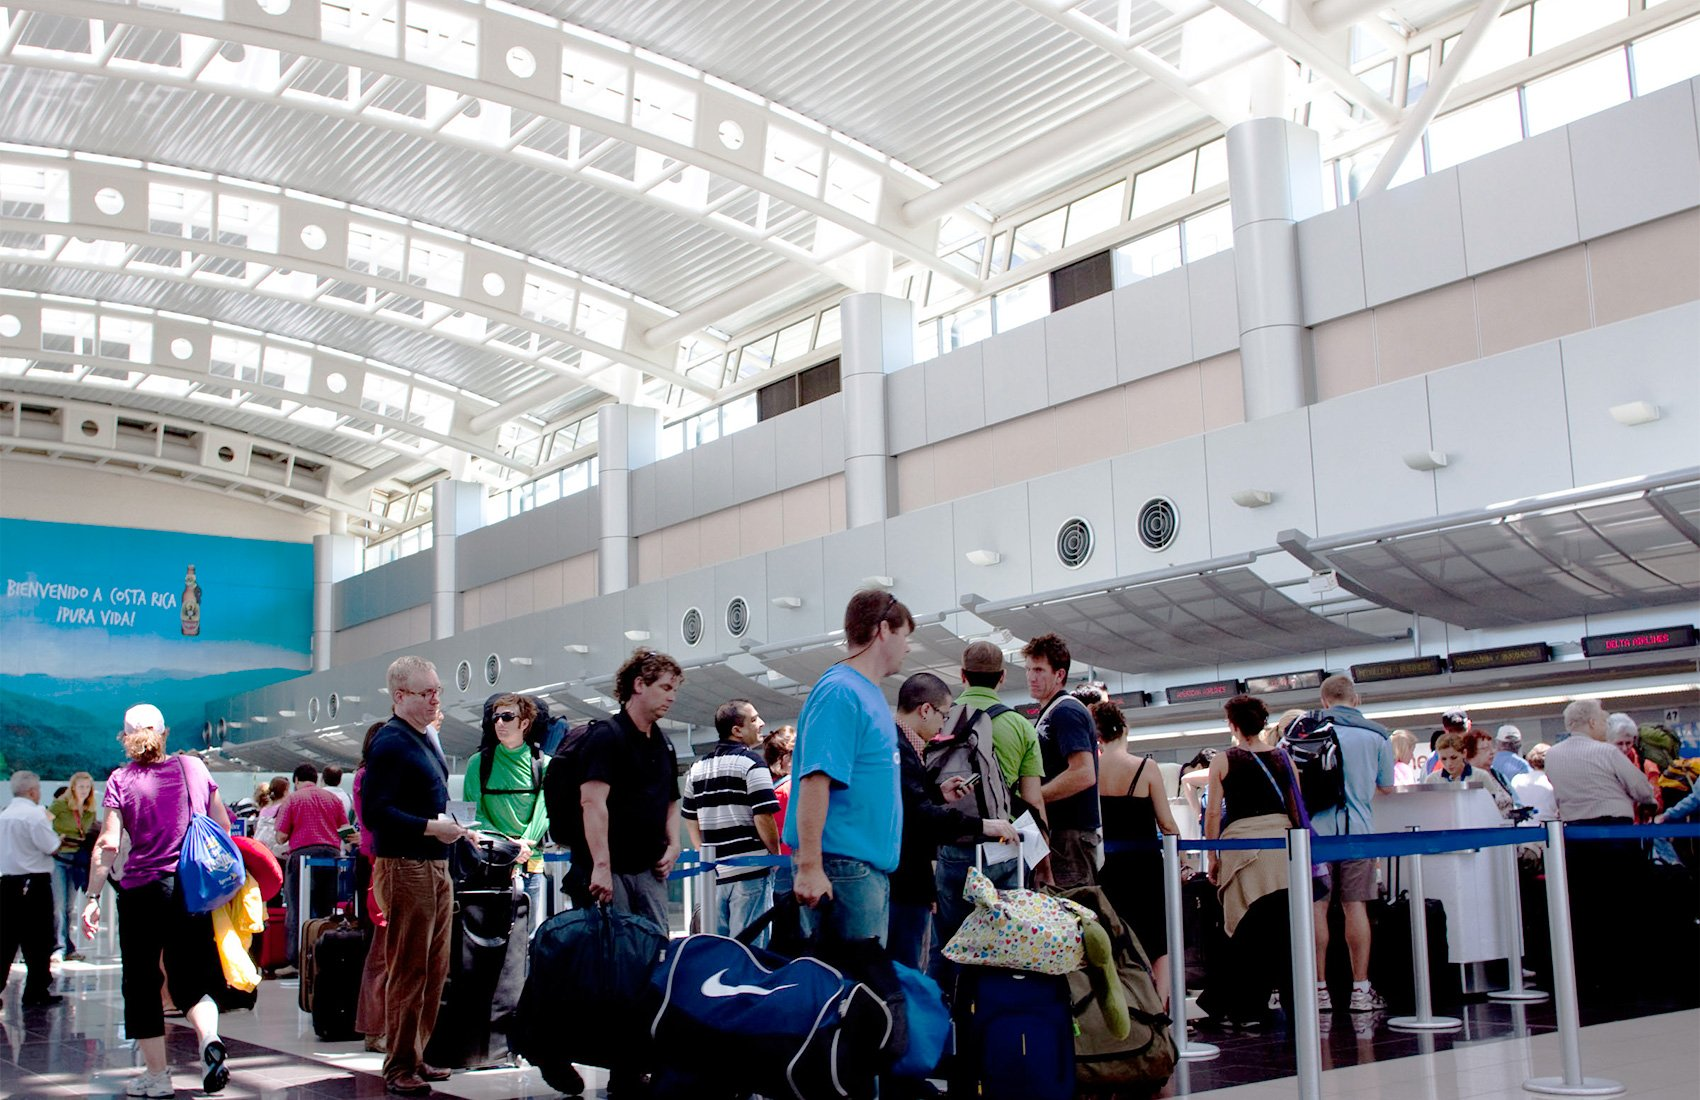 Juan Santamaria Airport in Costa Rica Implements New Technology to Improve Arrival and Departure Times